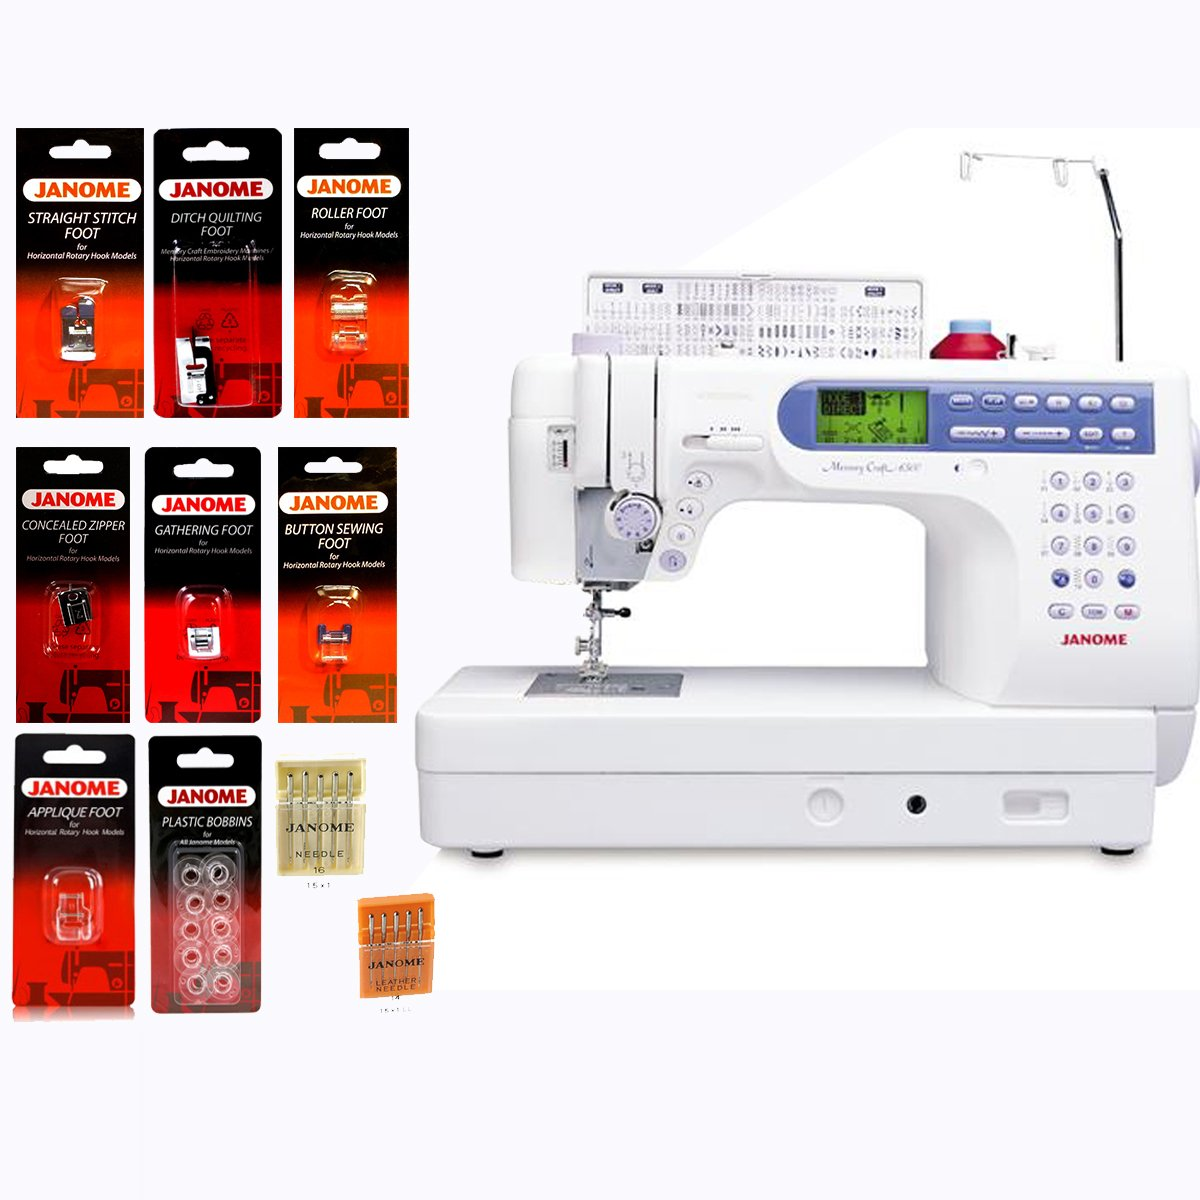 Top 10 Best Computerized Sewing Machines Reviews in 2020 4